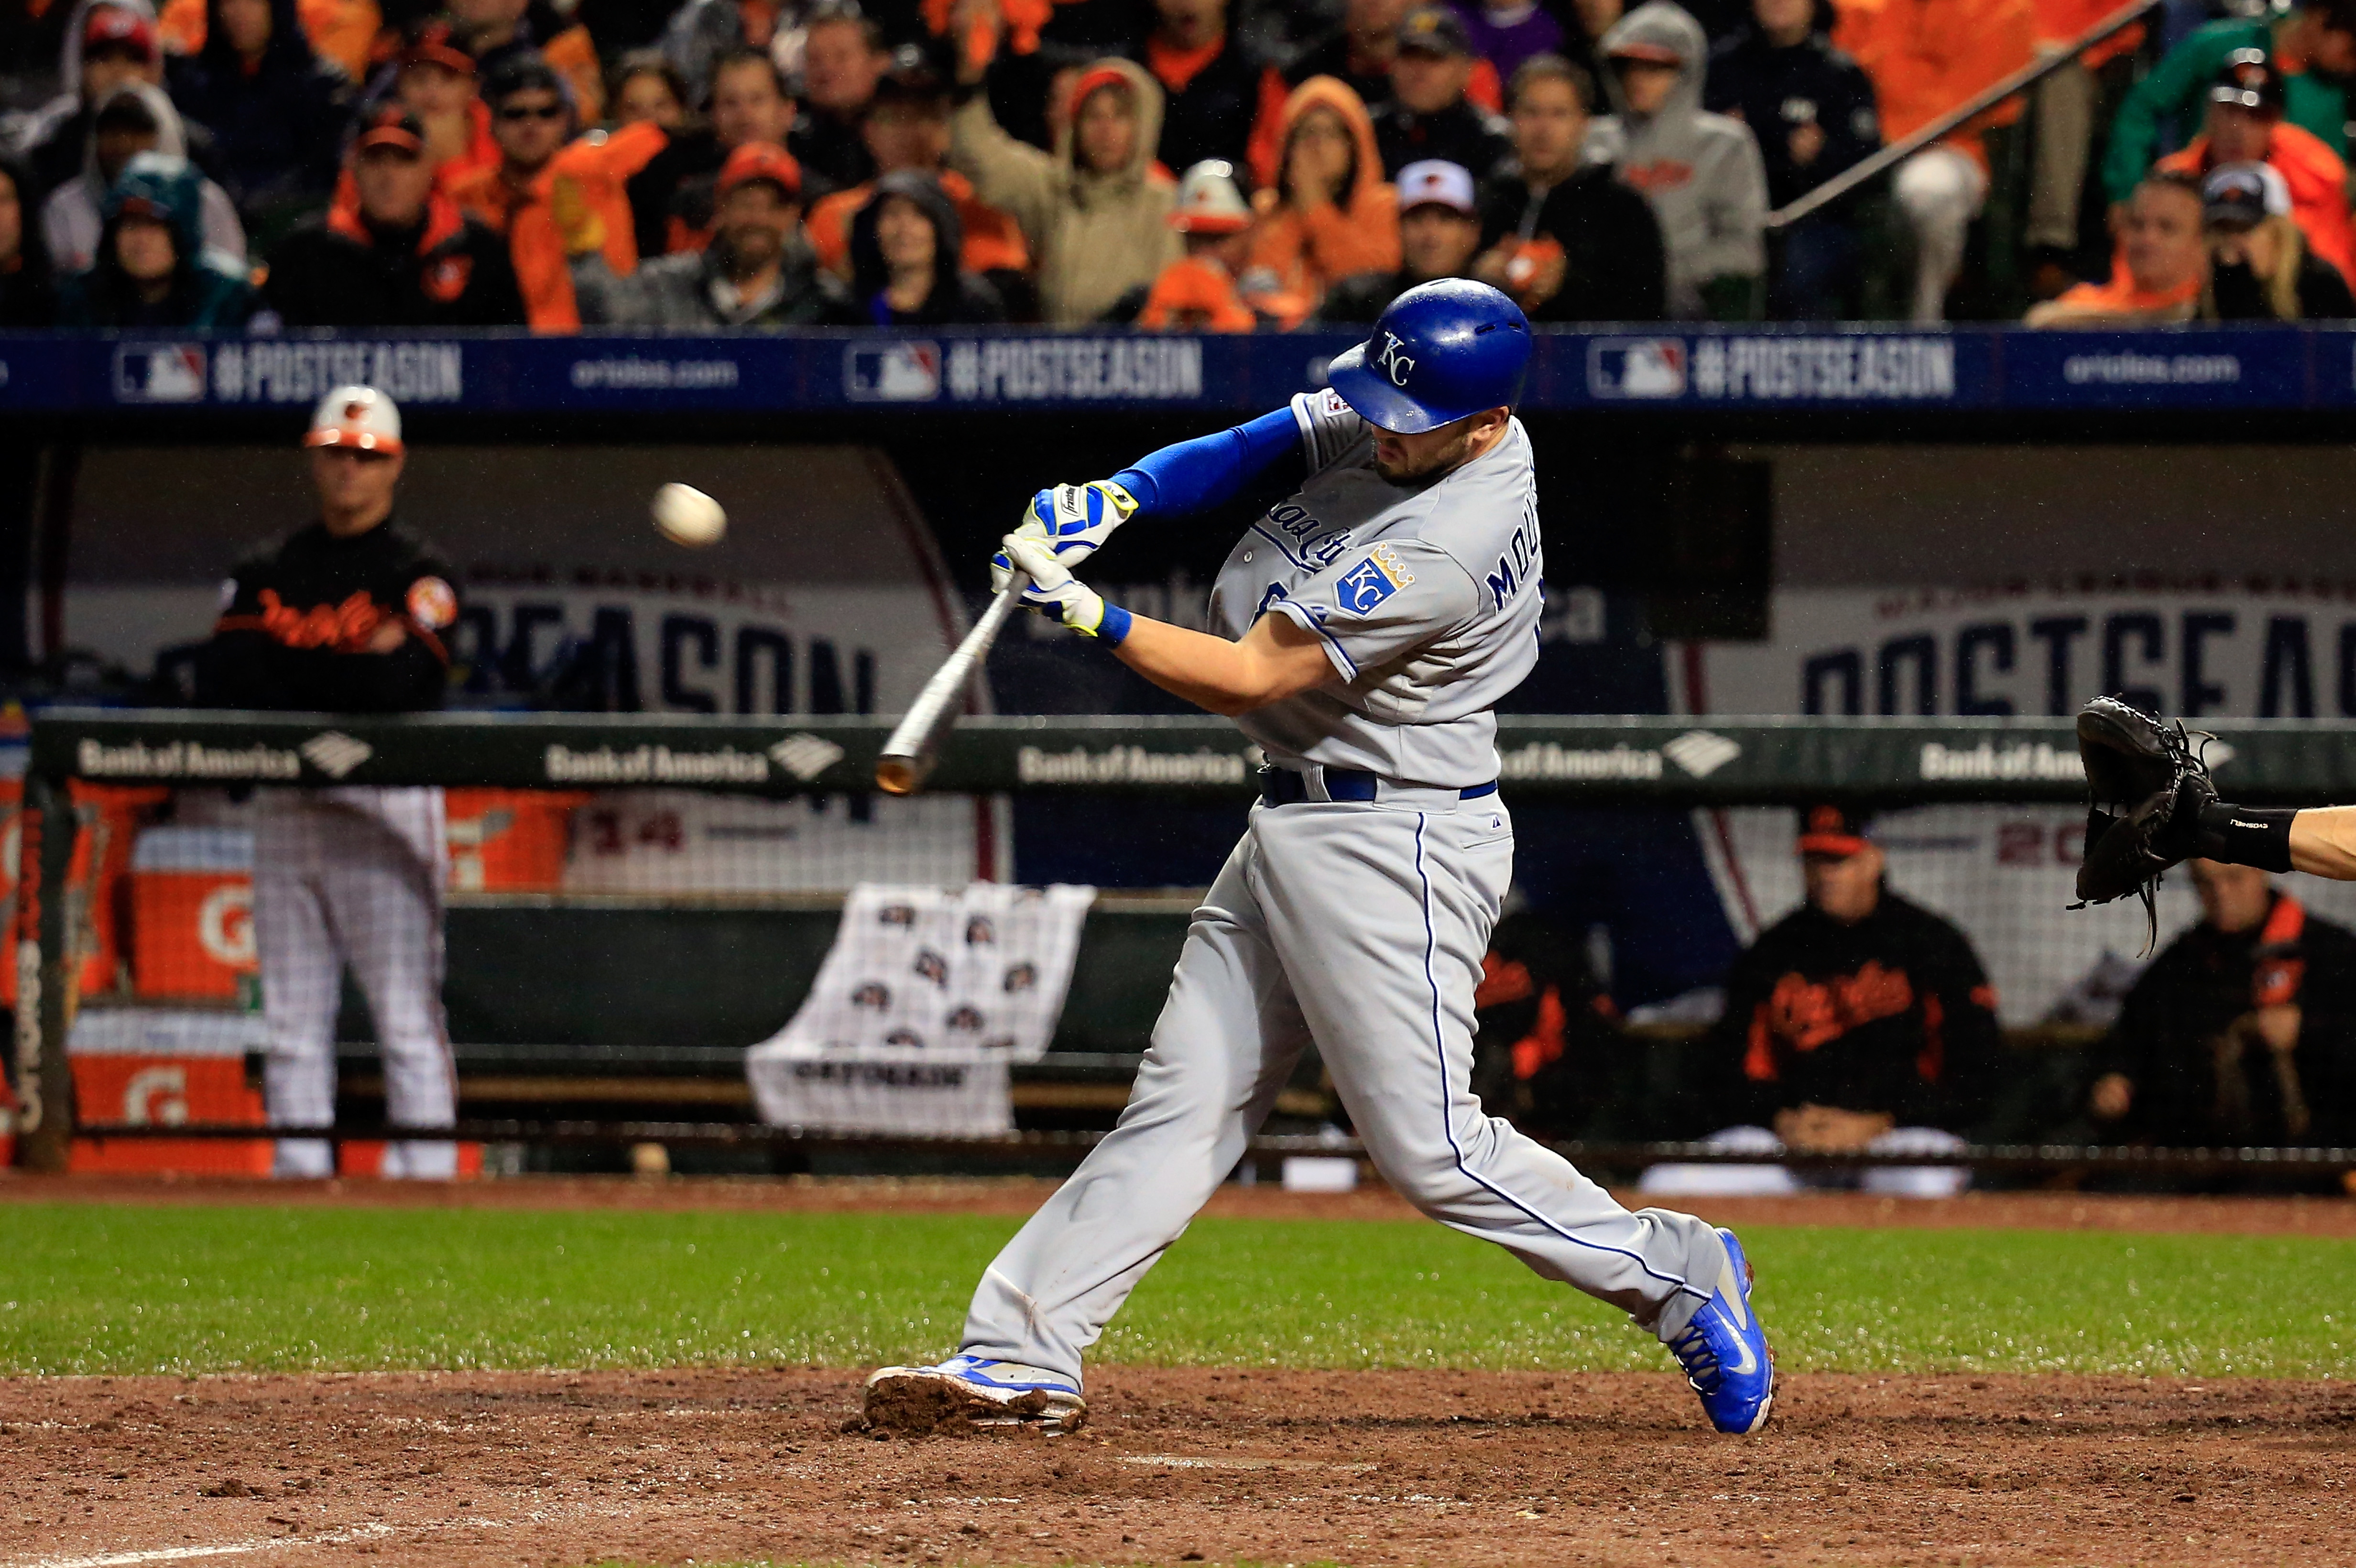 MLB trade rumors: Phillies, Royals discuss possible deal for Mike Moustakas